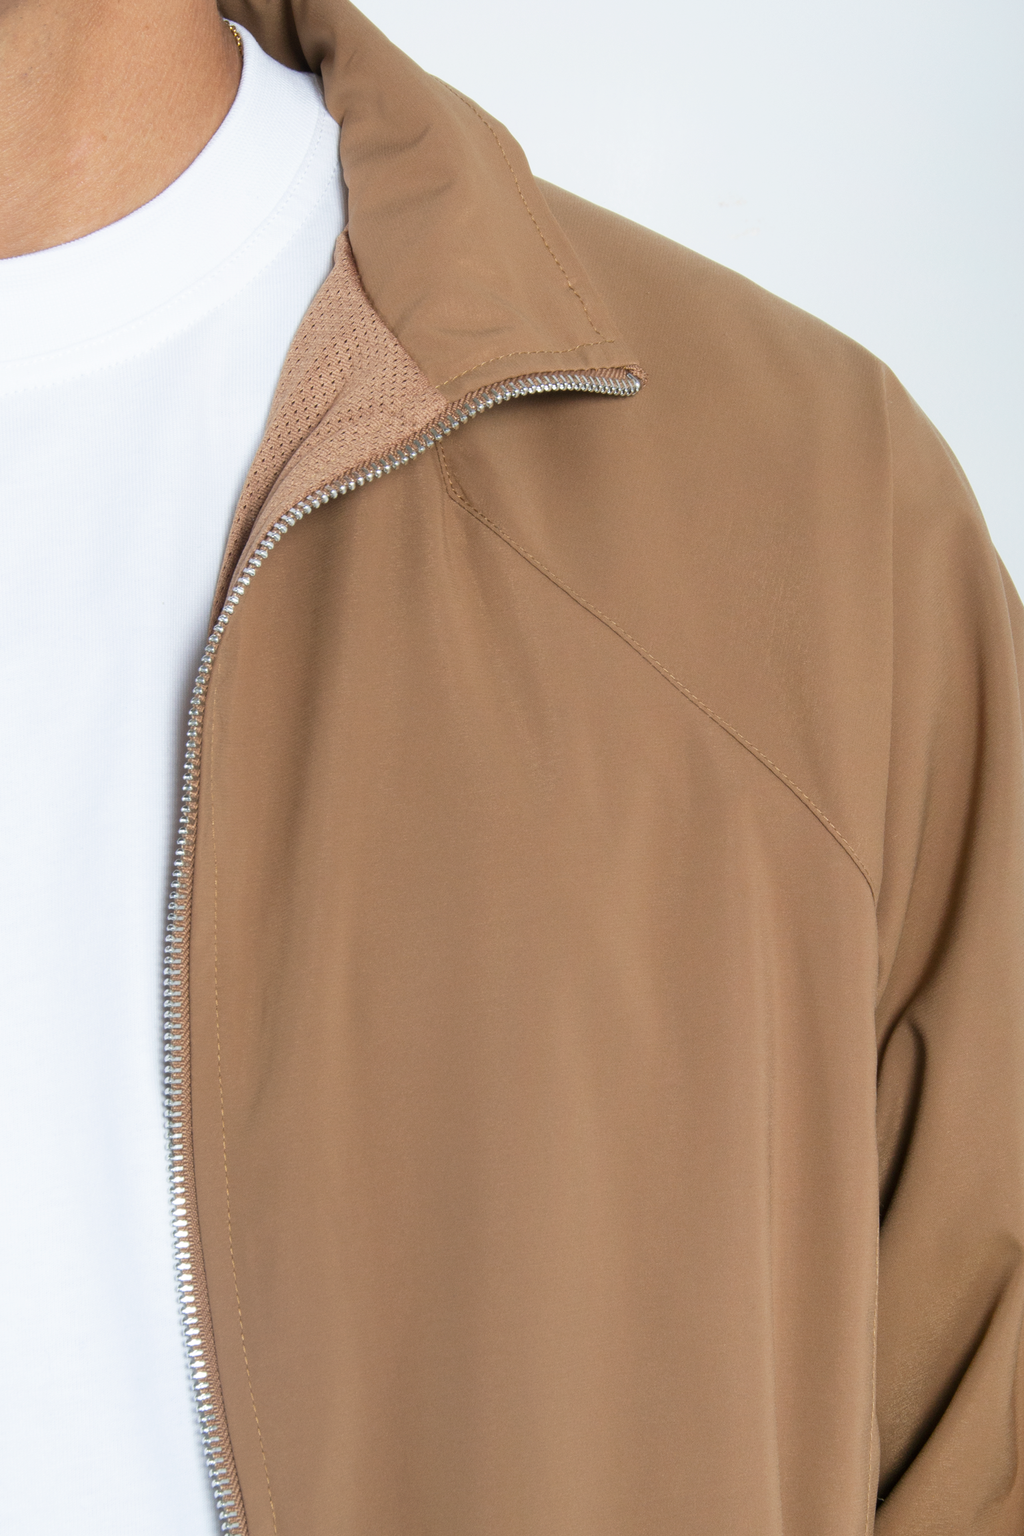 Jordan Jacket Brown